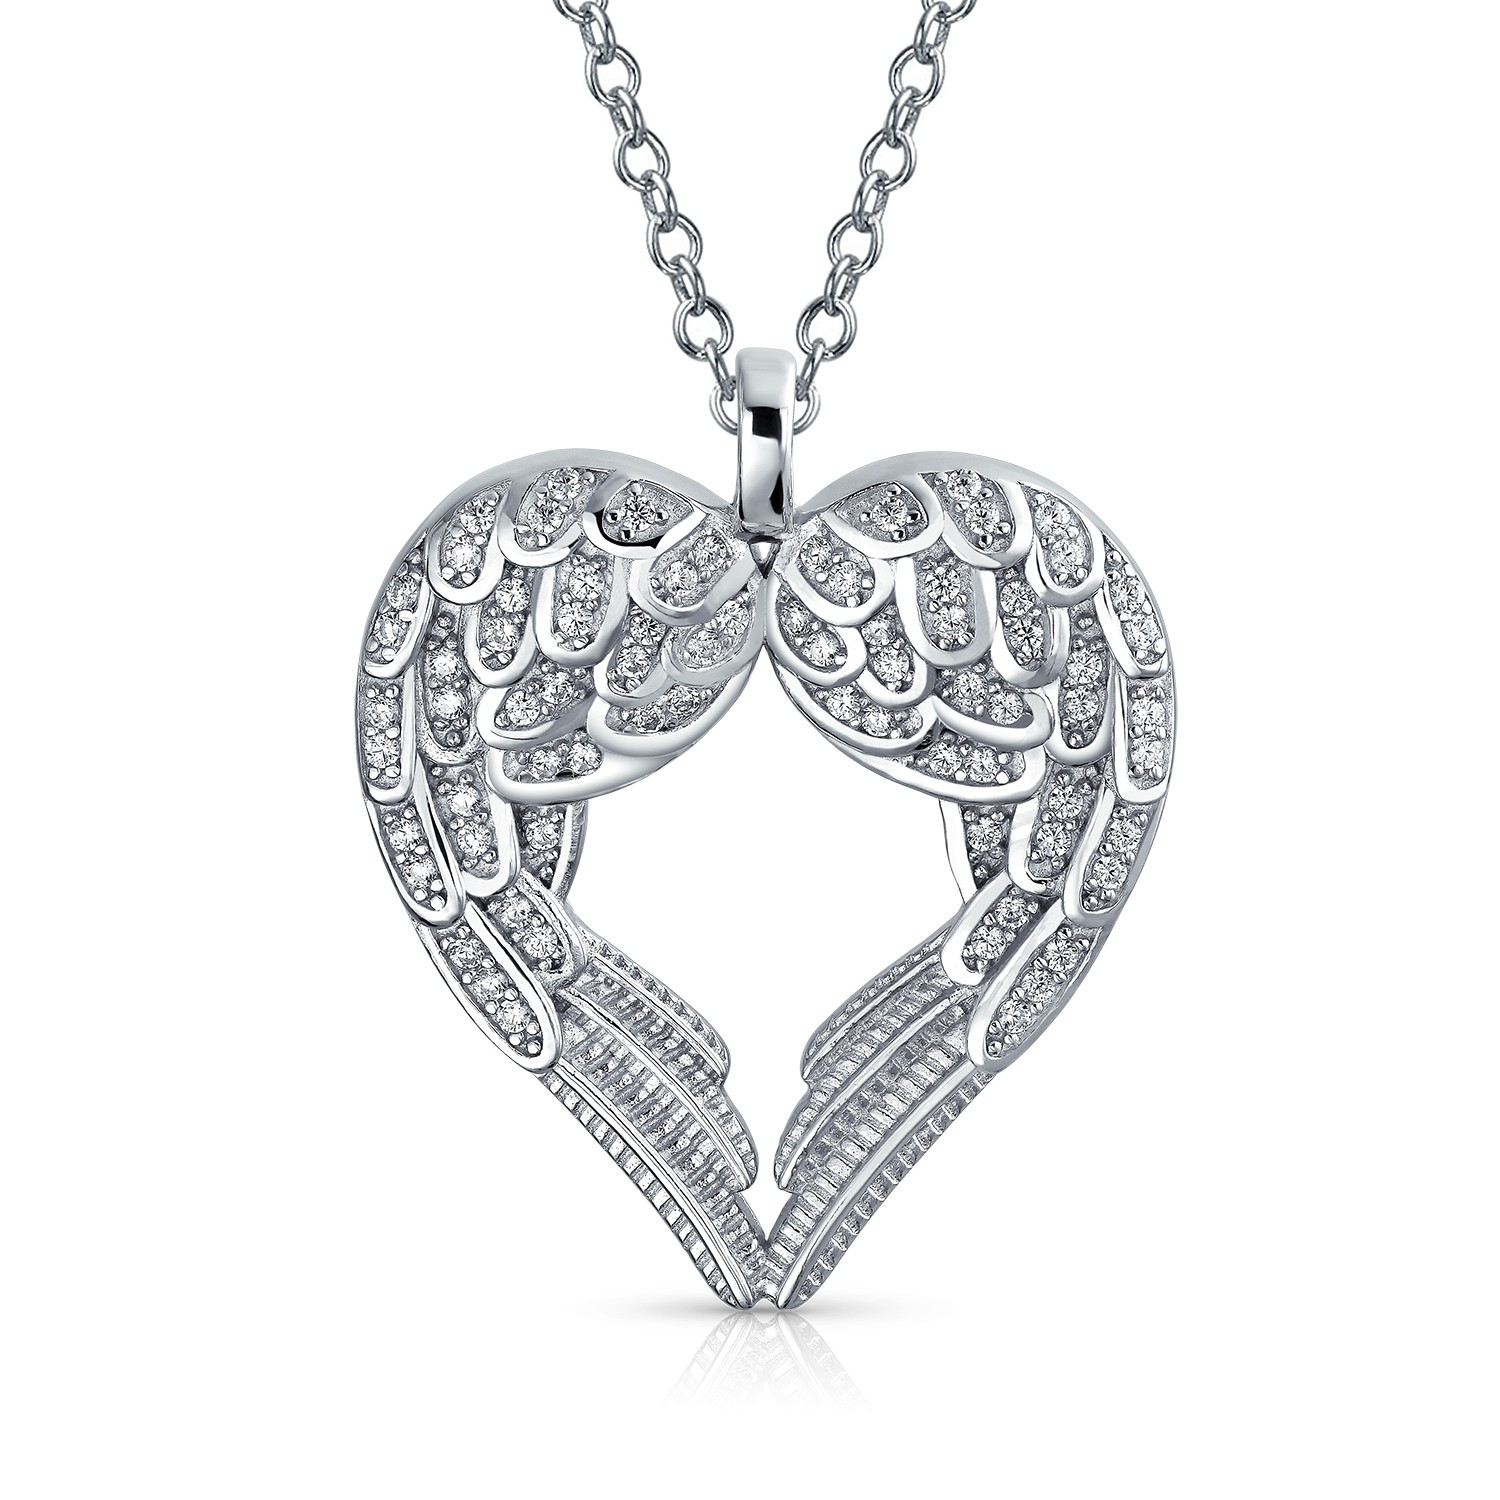 1500x1500 Sterling Silver Pave Cz Heart Guardian Angel Wing Pendant Necklace